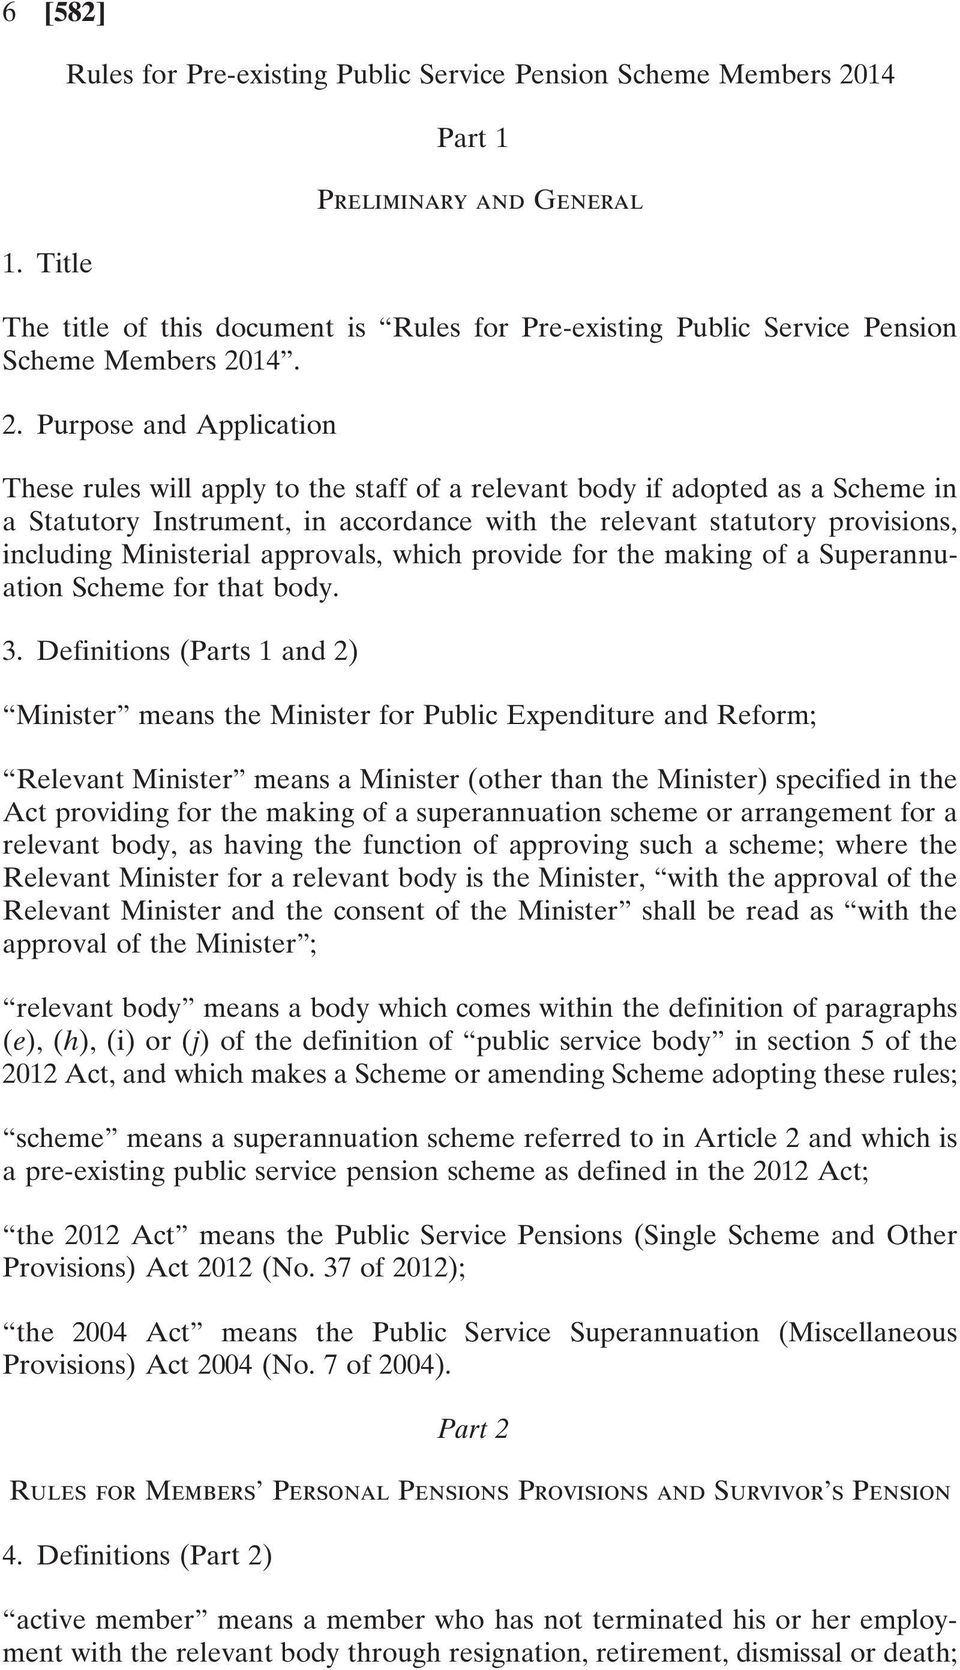 2. Purpose and Application These rules will apply to the staff of a relevant body if adopted as a Scheme in a Statutory Instrument, in accordance with the relevant statutory provisions, including